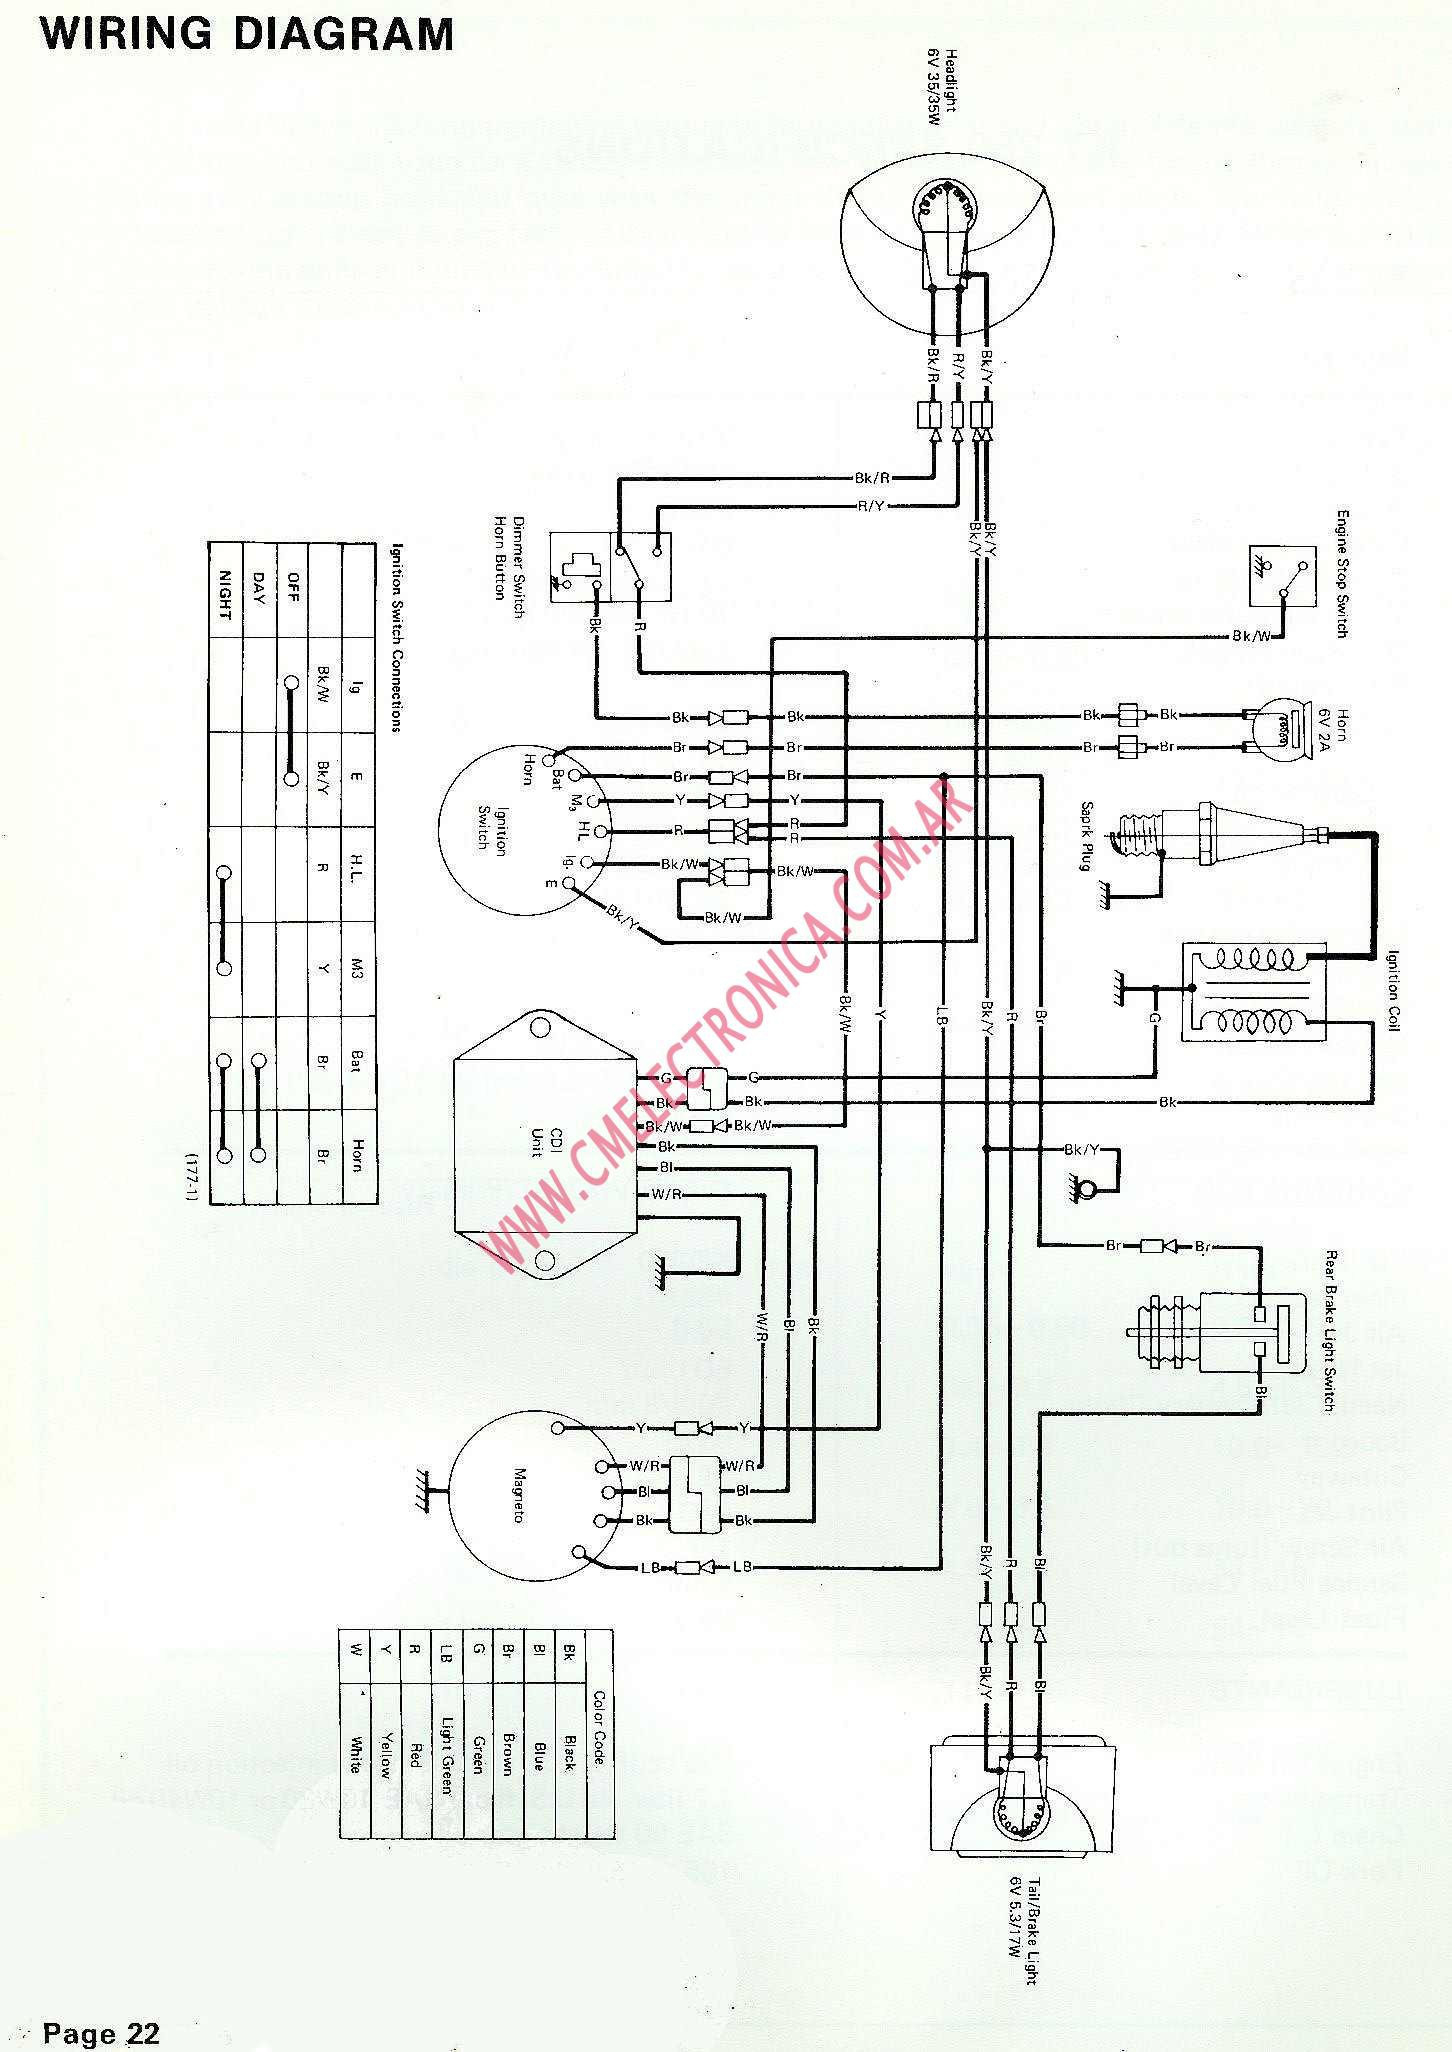 hight resolution of wiring diagram for yamaha timberwolf 250 source xsvi 6502 nav wiring diagram collection yamaha golf